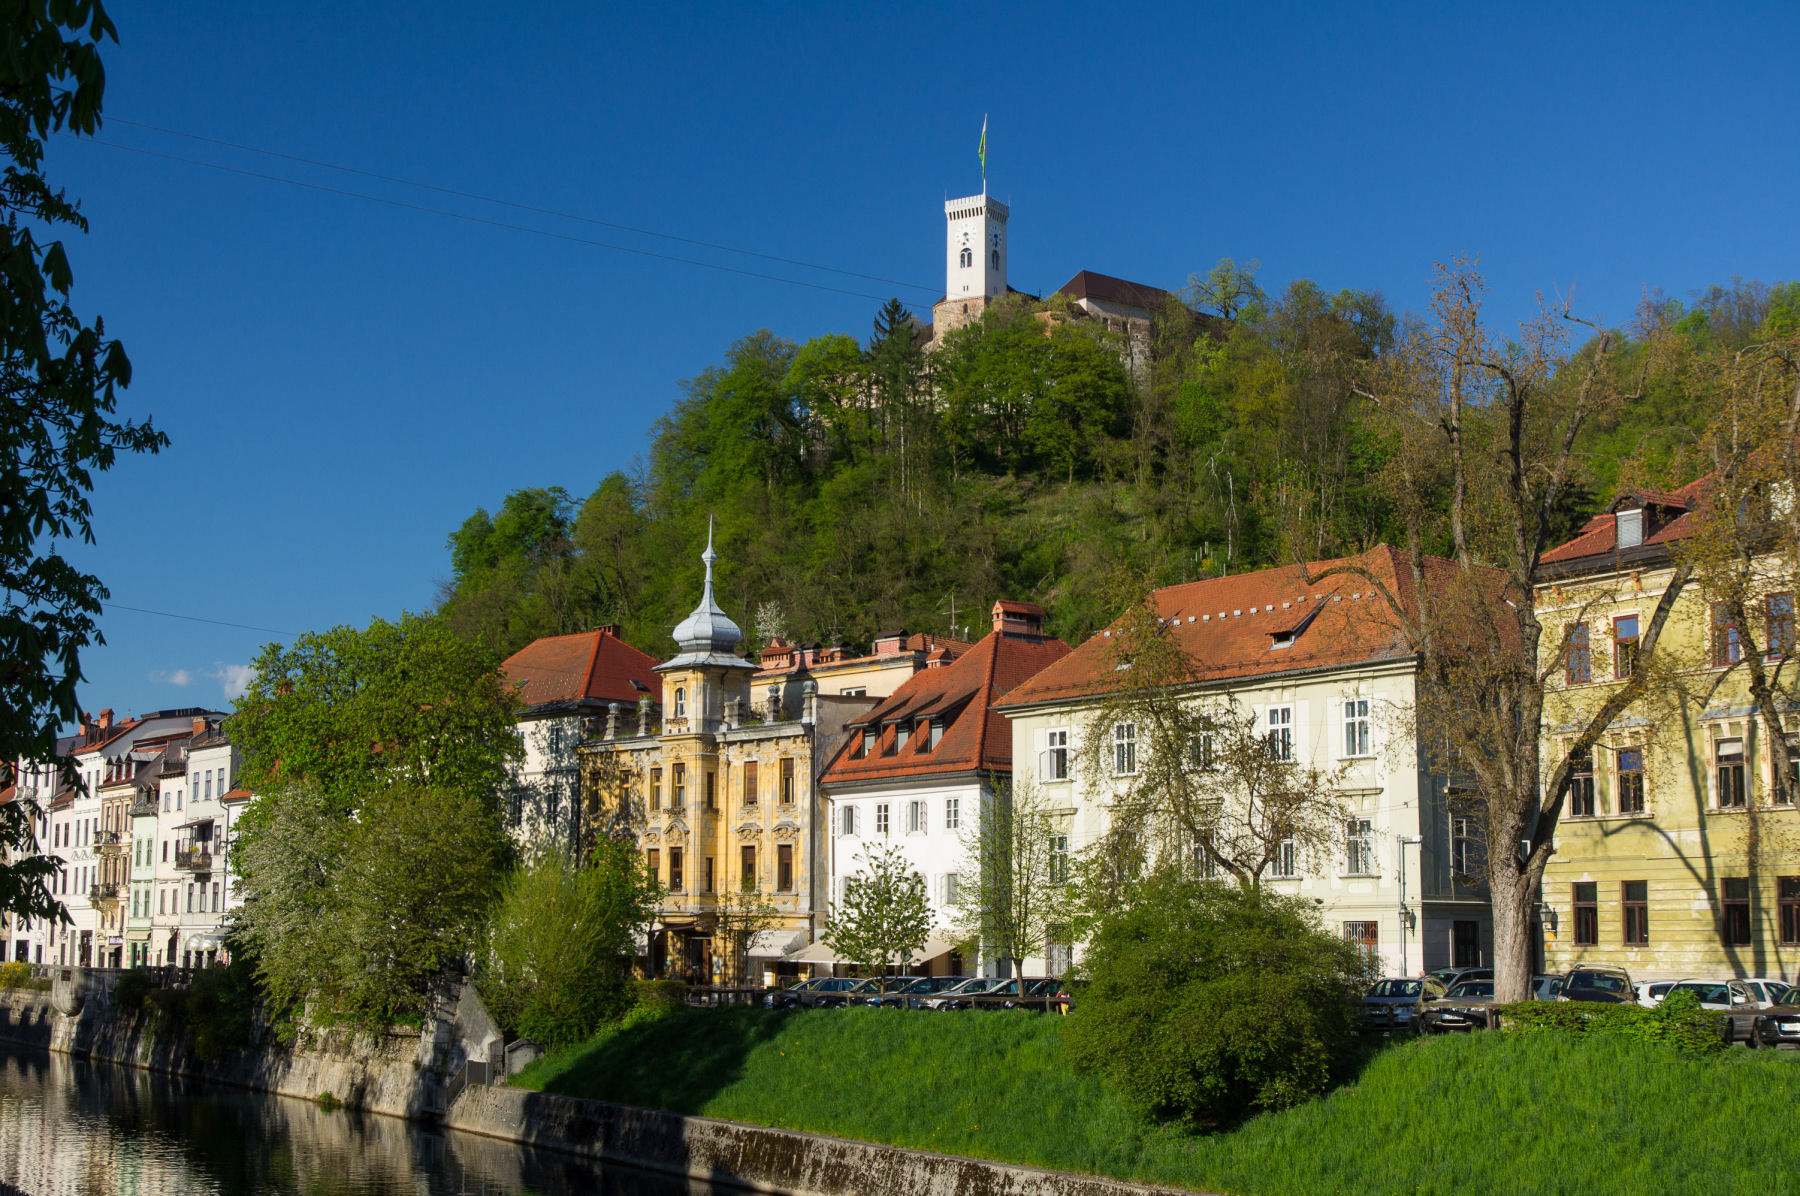 Another view of the Ljubljana castle, Slovenia